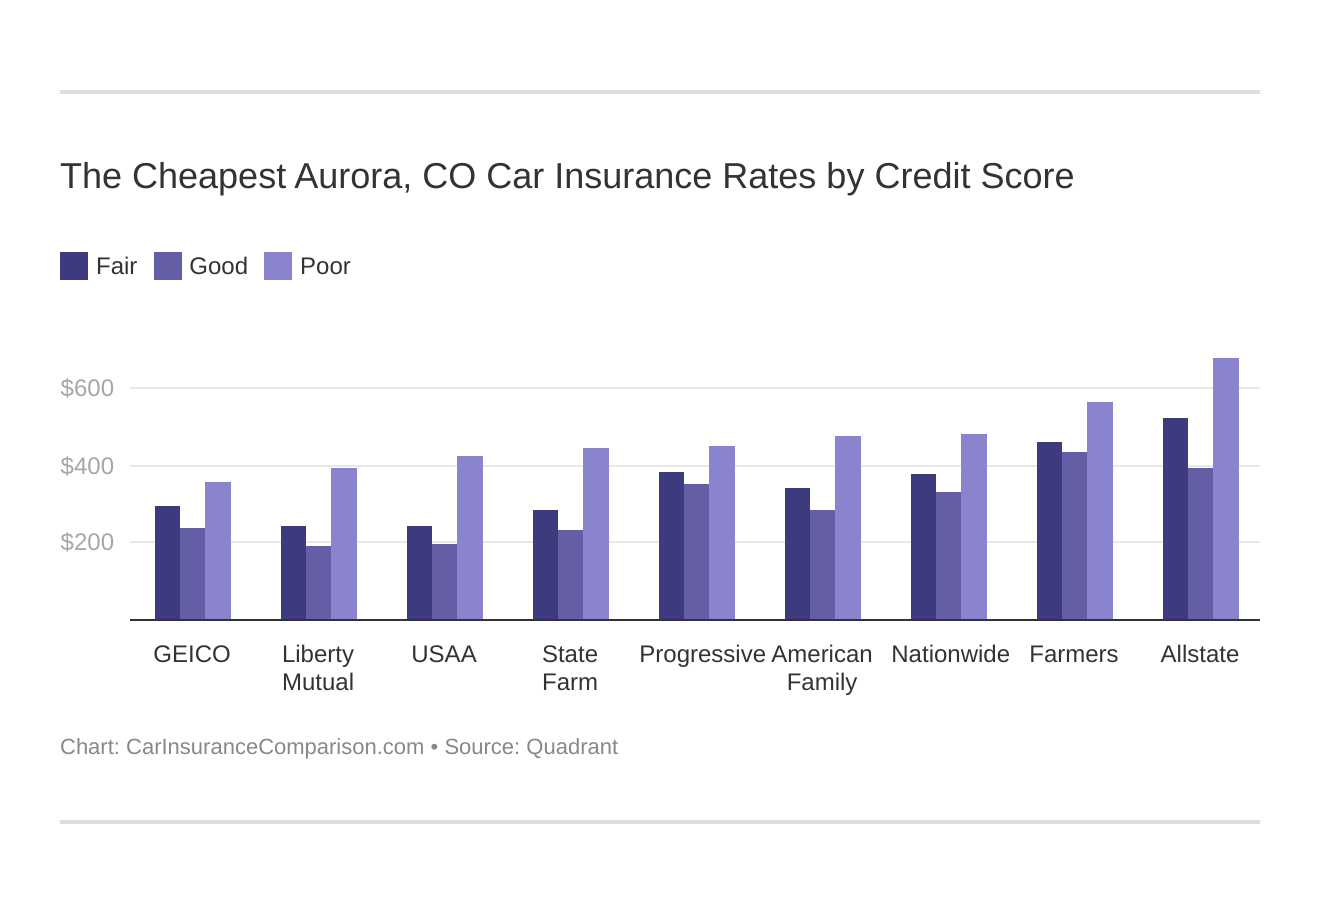 The Cheapest Aurora, CO Car Insurance Rates by Credit Score